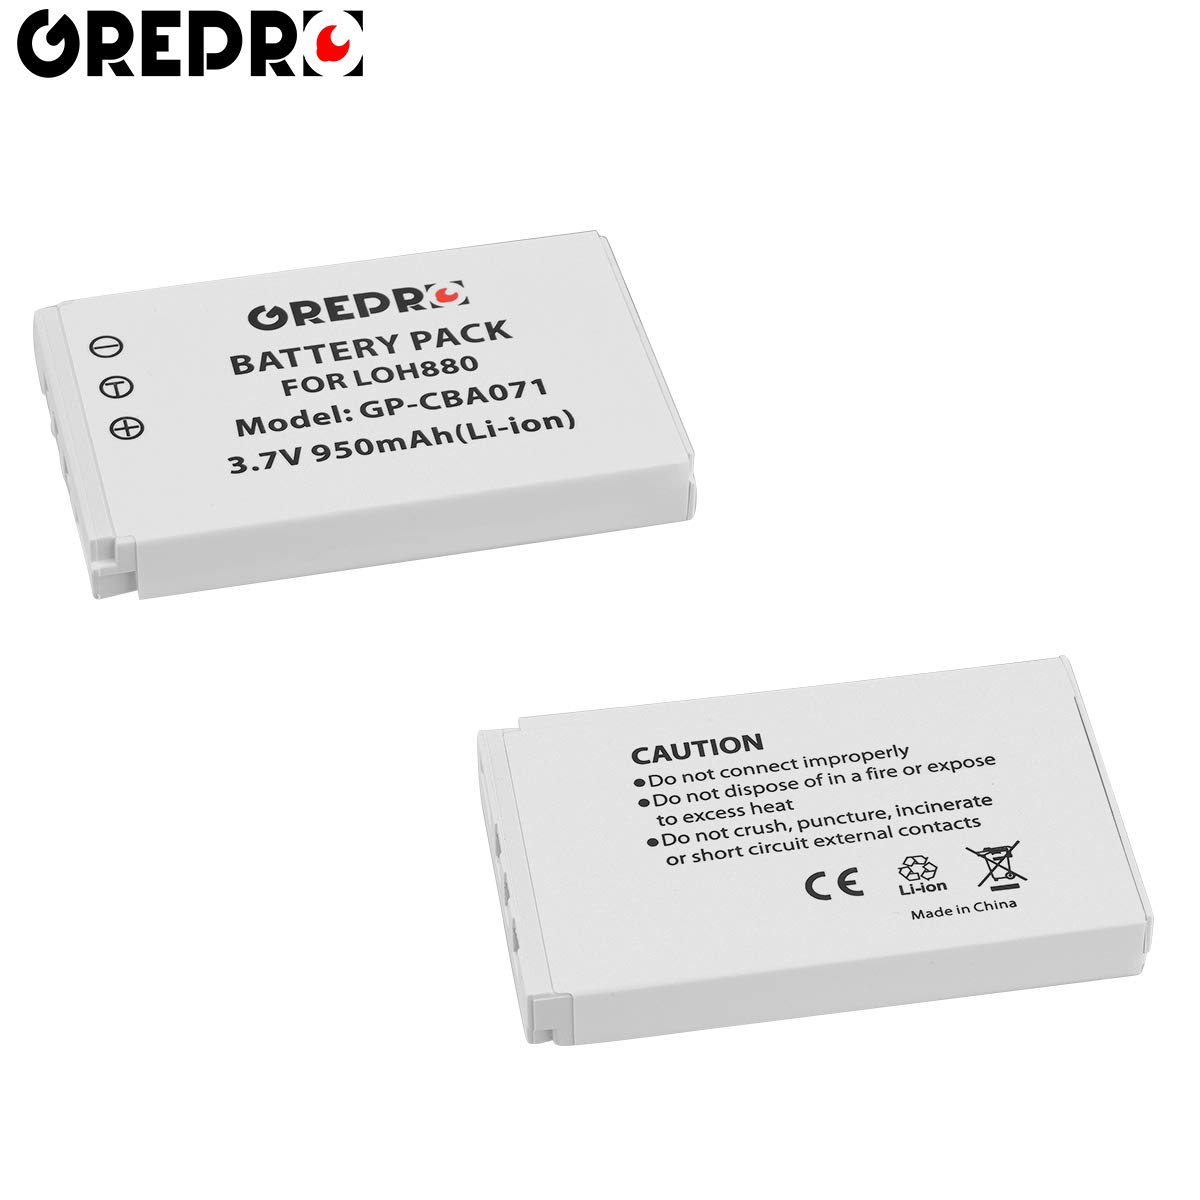 Grepro LOH880 Battery(2 Packs) Compatible with Logitech Harmony 880 890 720 850 785 885 Pro 895 900 One MX-880 R-IG7 F12440023 815-000037 190304-2000 190304-0000 866165 866145 866207 Monster AVL300 by GREPRO